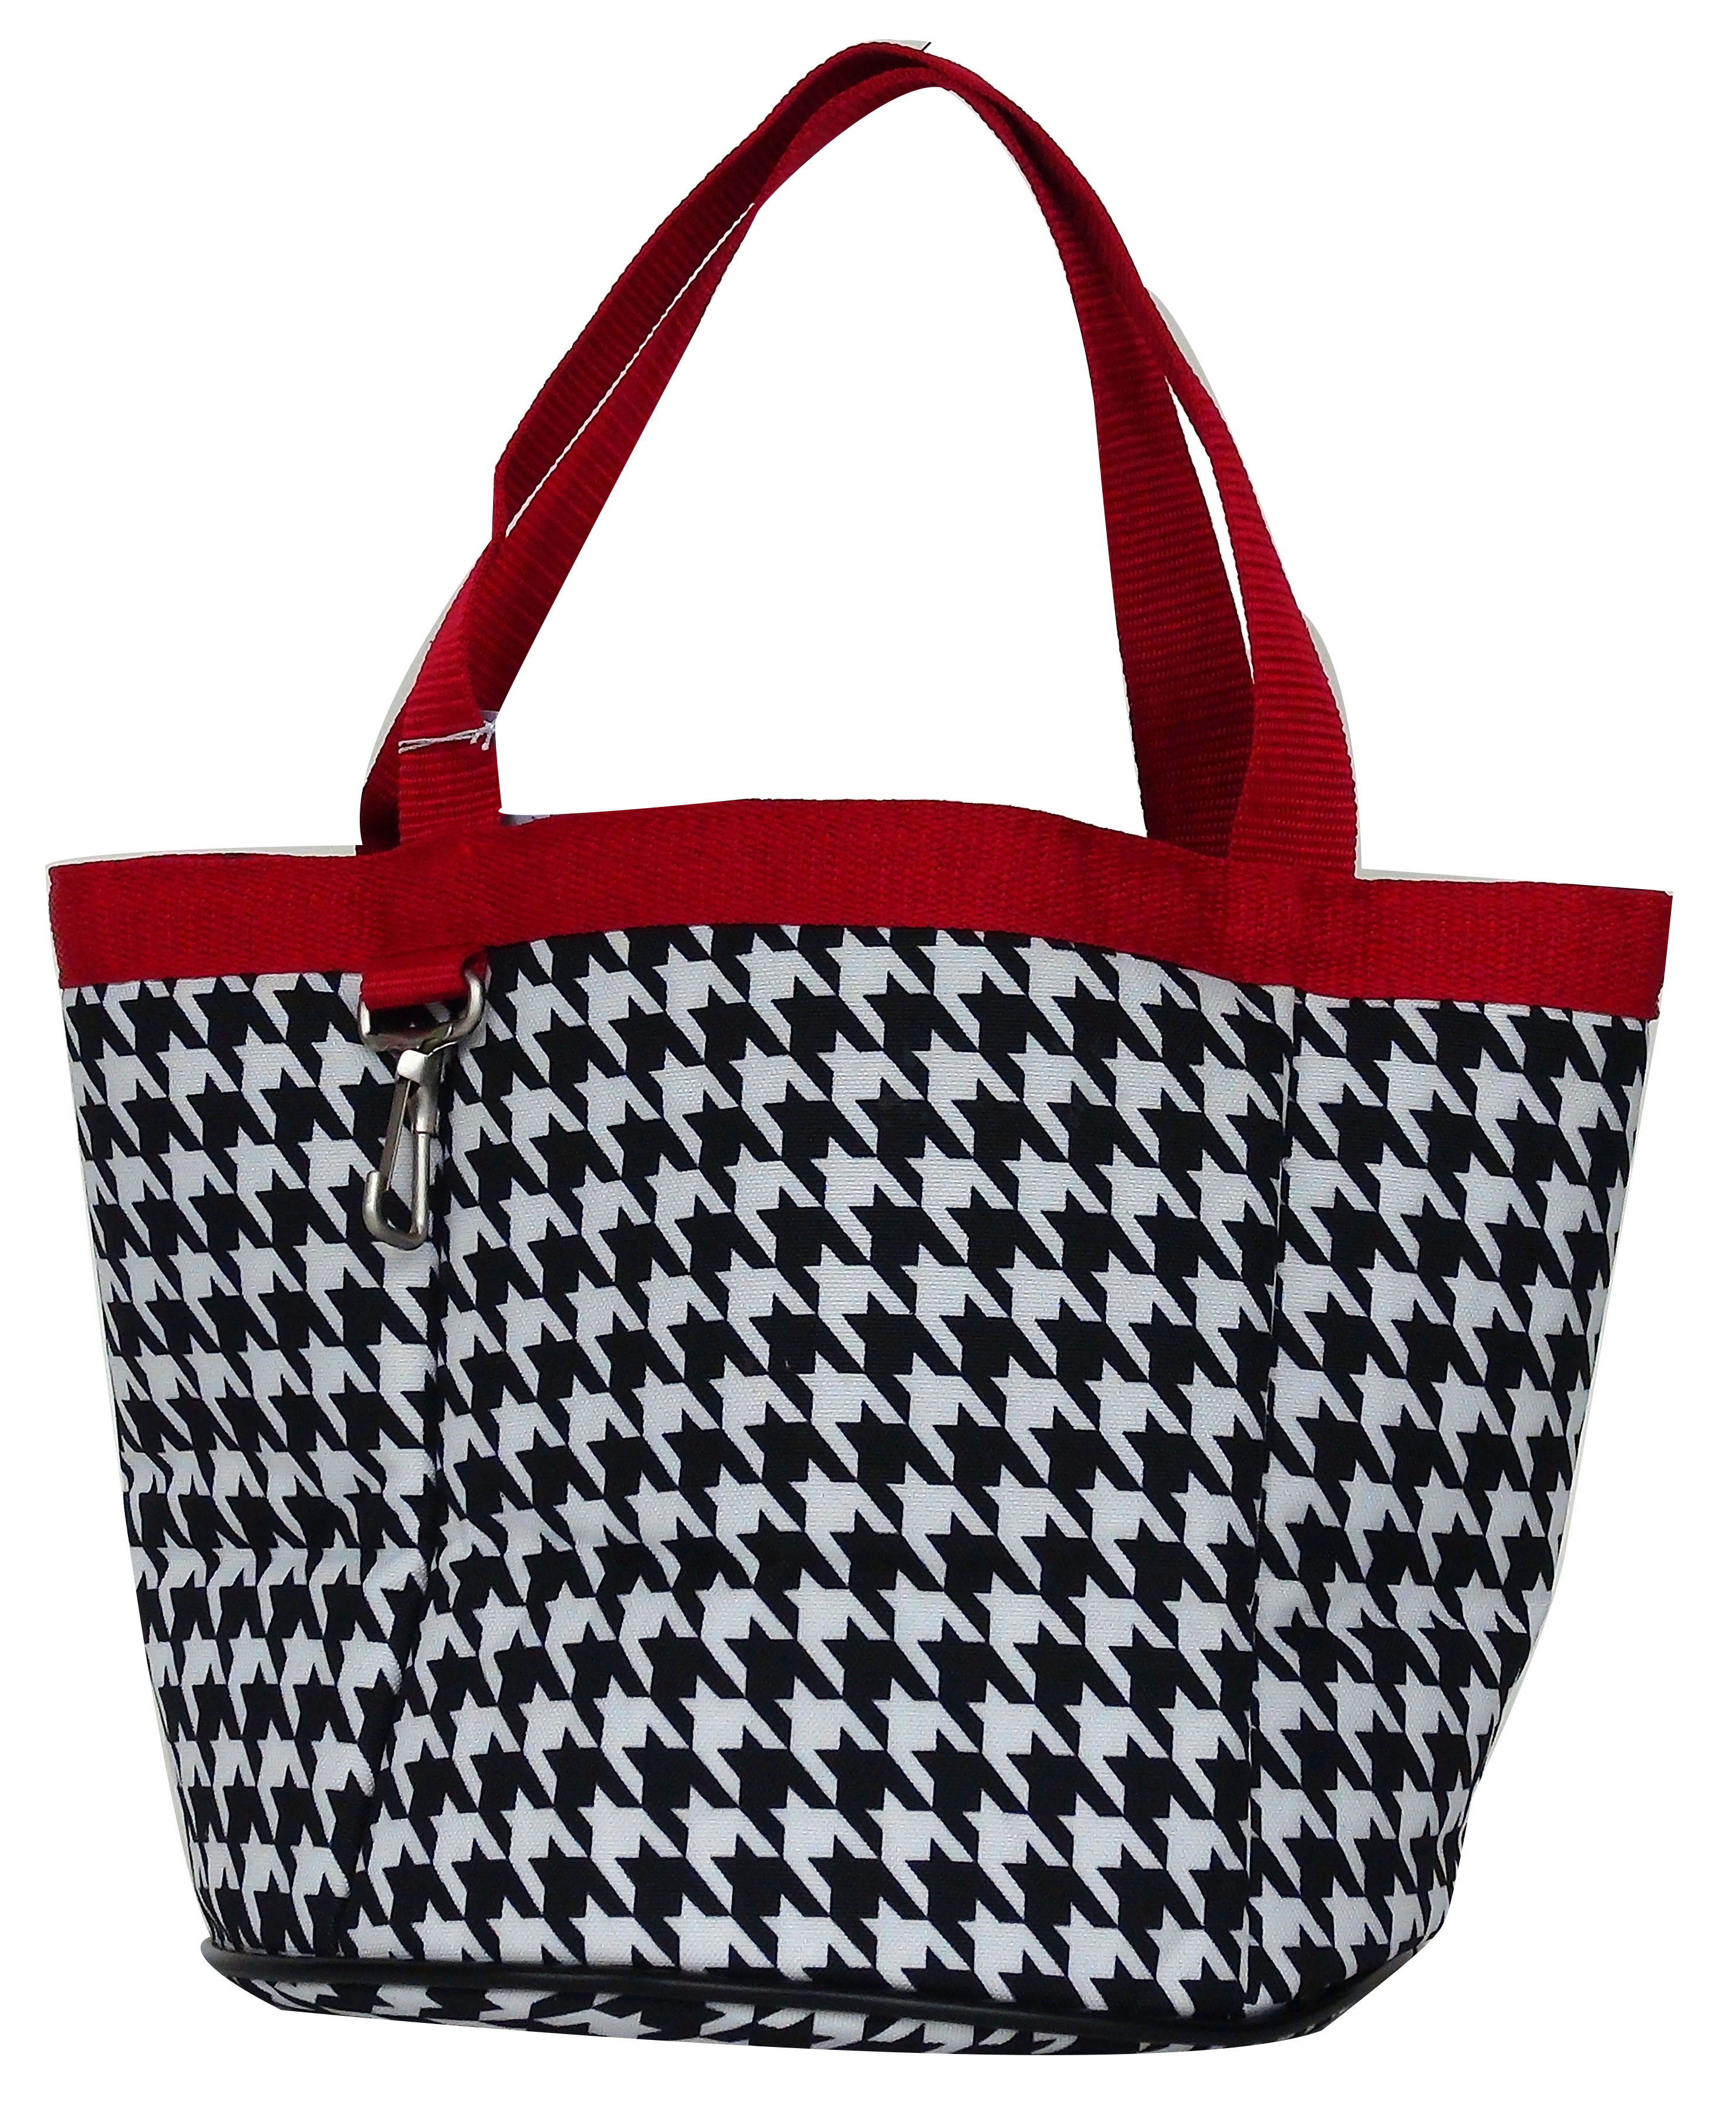 Lami-Cell Houndstooth Stable Tote - Small